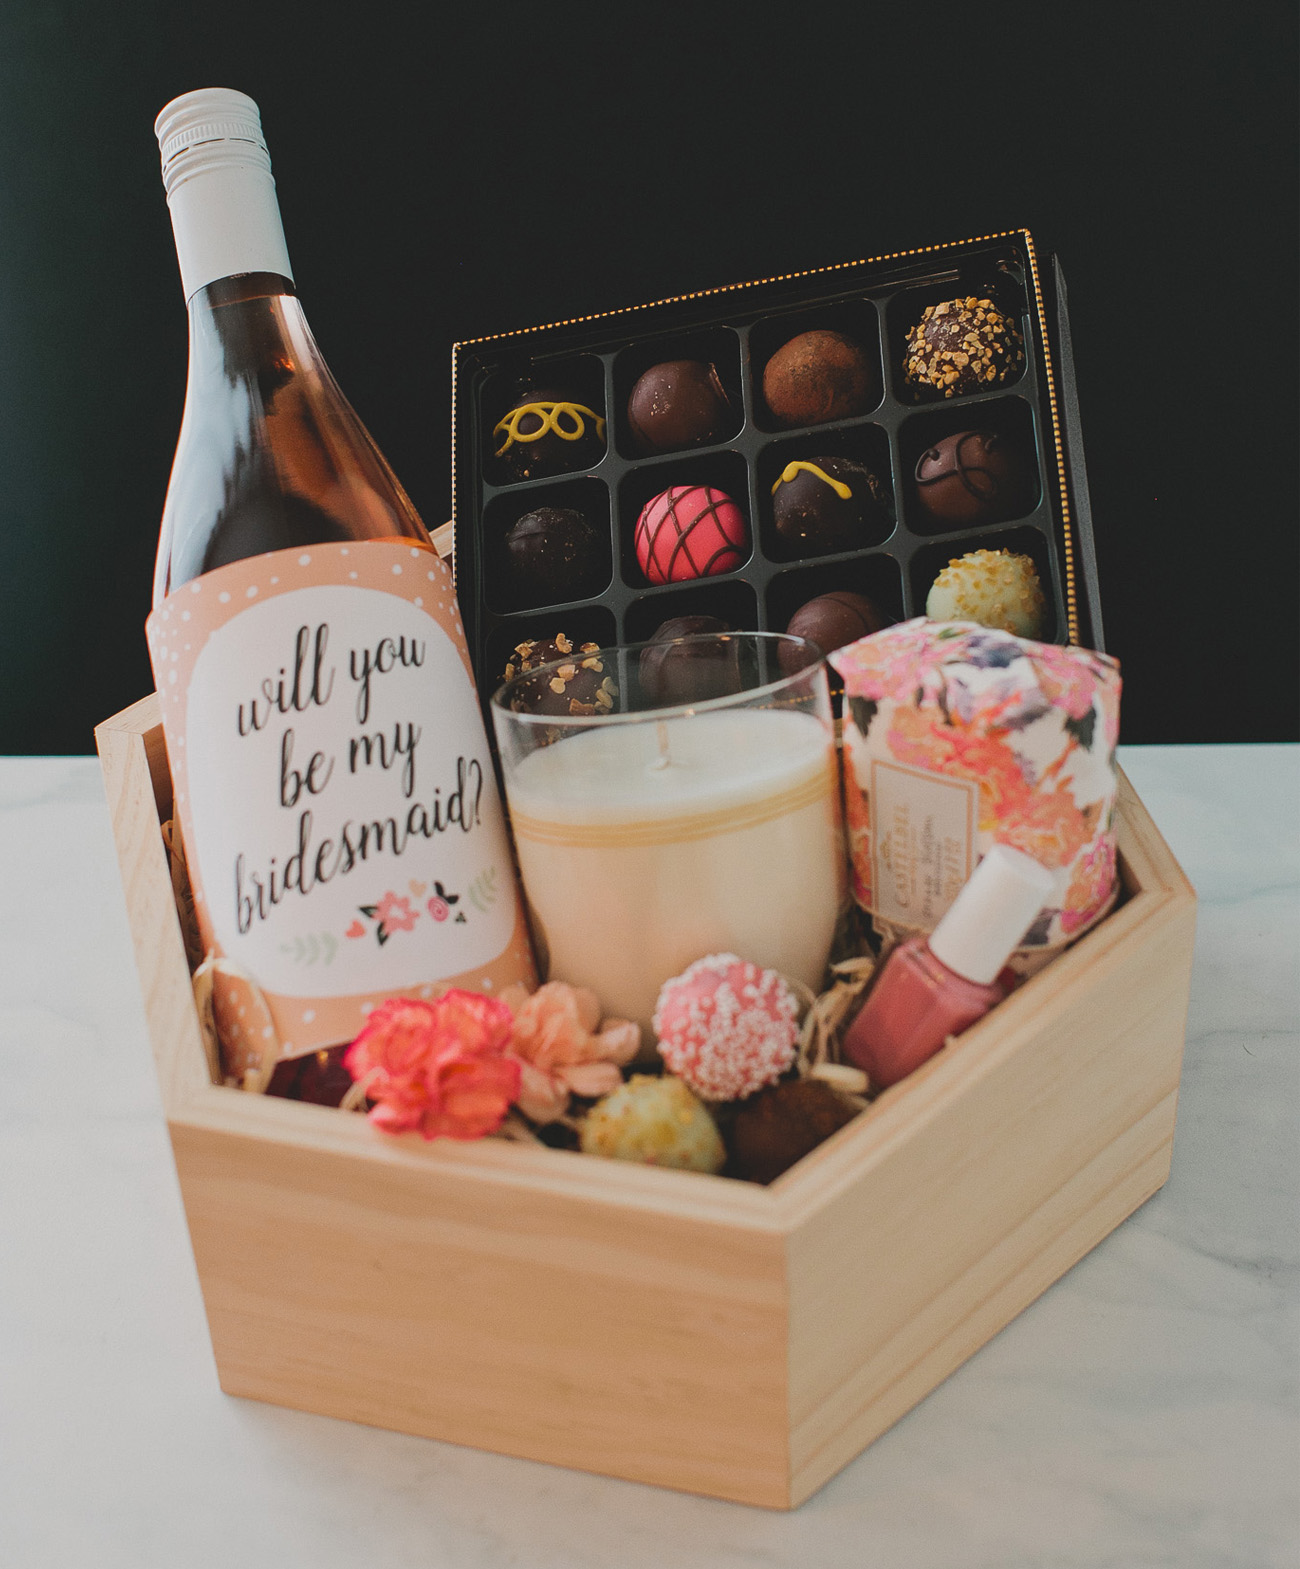 Will You Be My Bridesmaid? Box